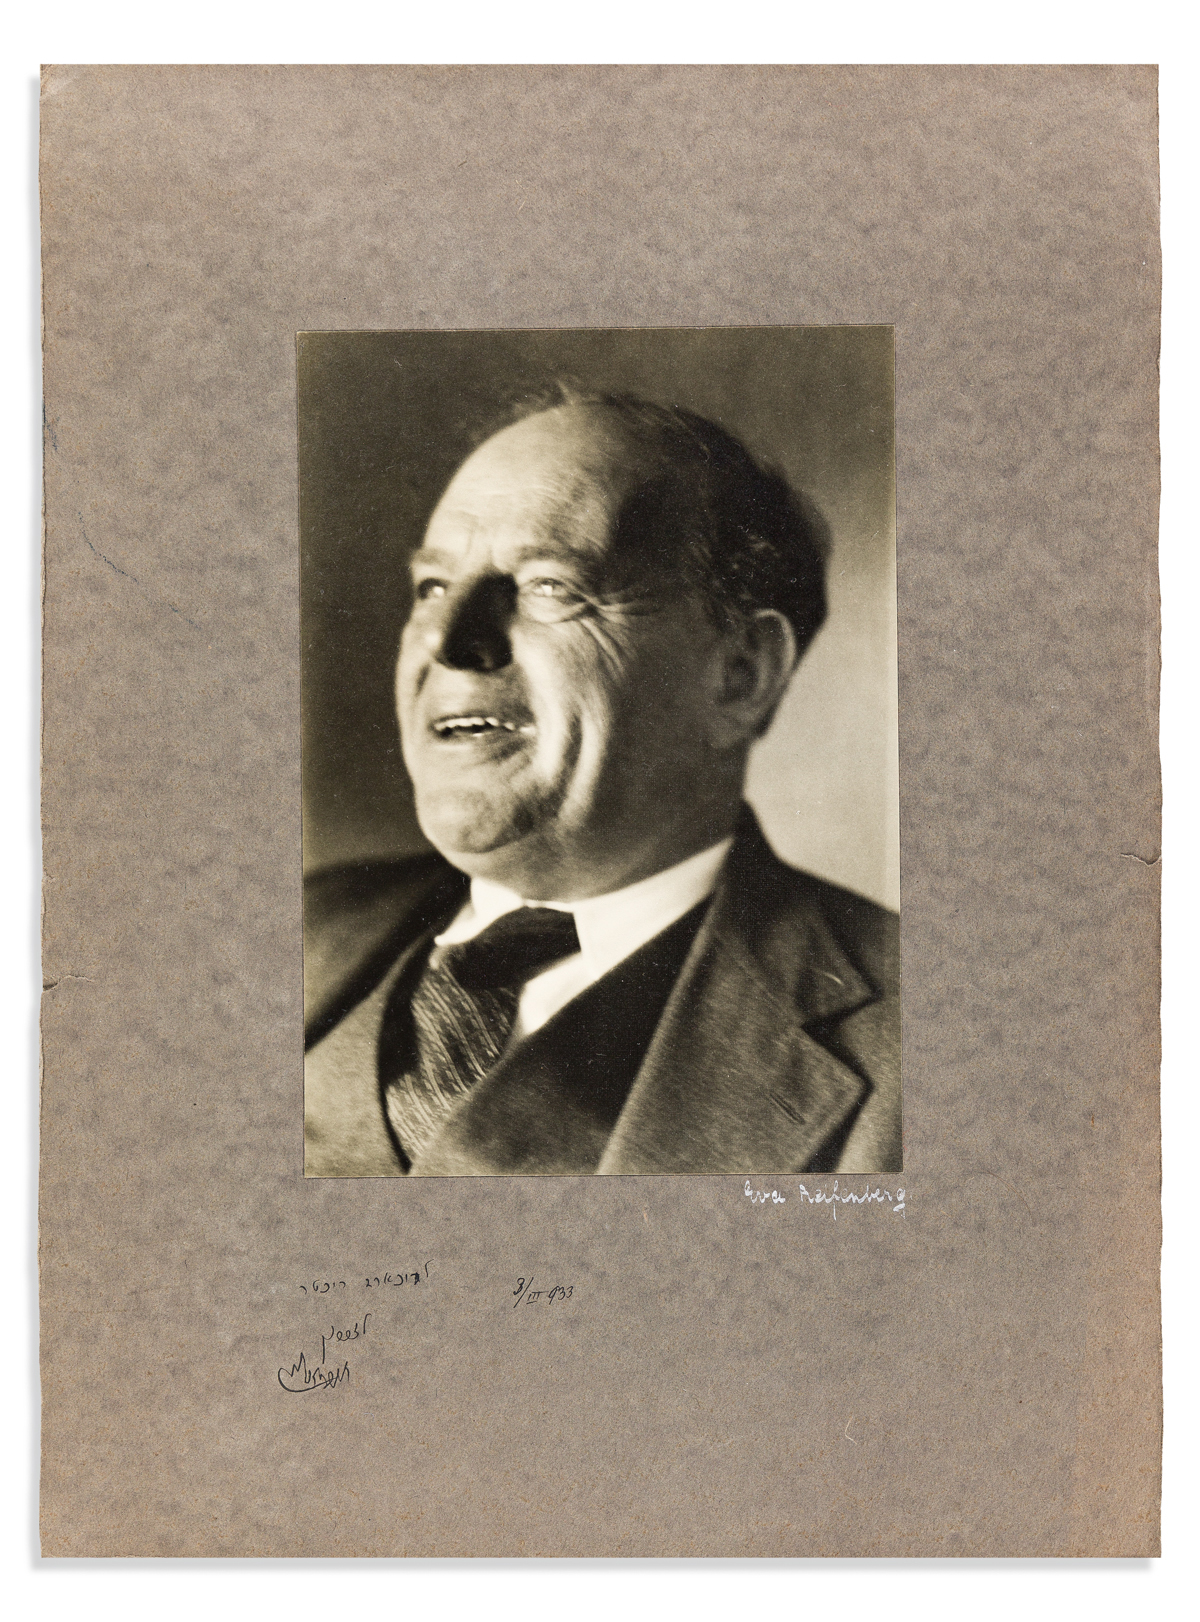 (JUDAICA.) BIALIK, HAYYIM NAHMAN. Two Photographs Signed and Inscribed, in Hebrew, bust portraits by Eva Riefenberg, showing him lookin